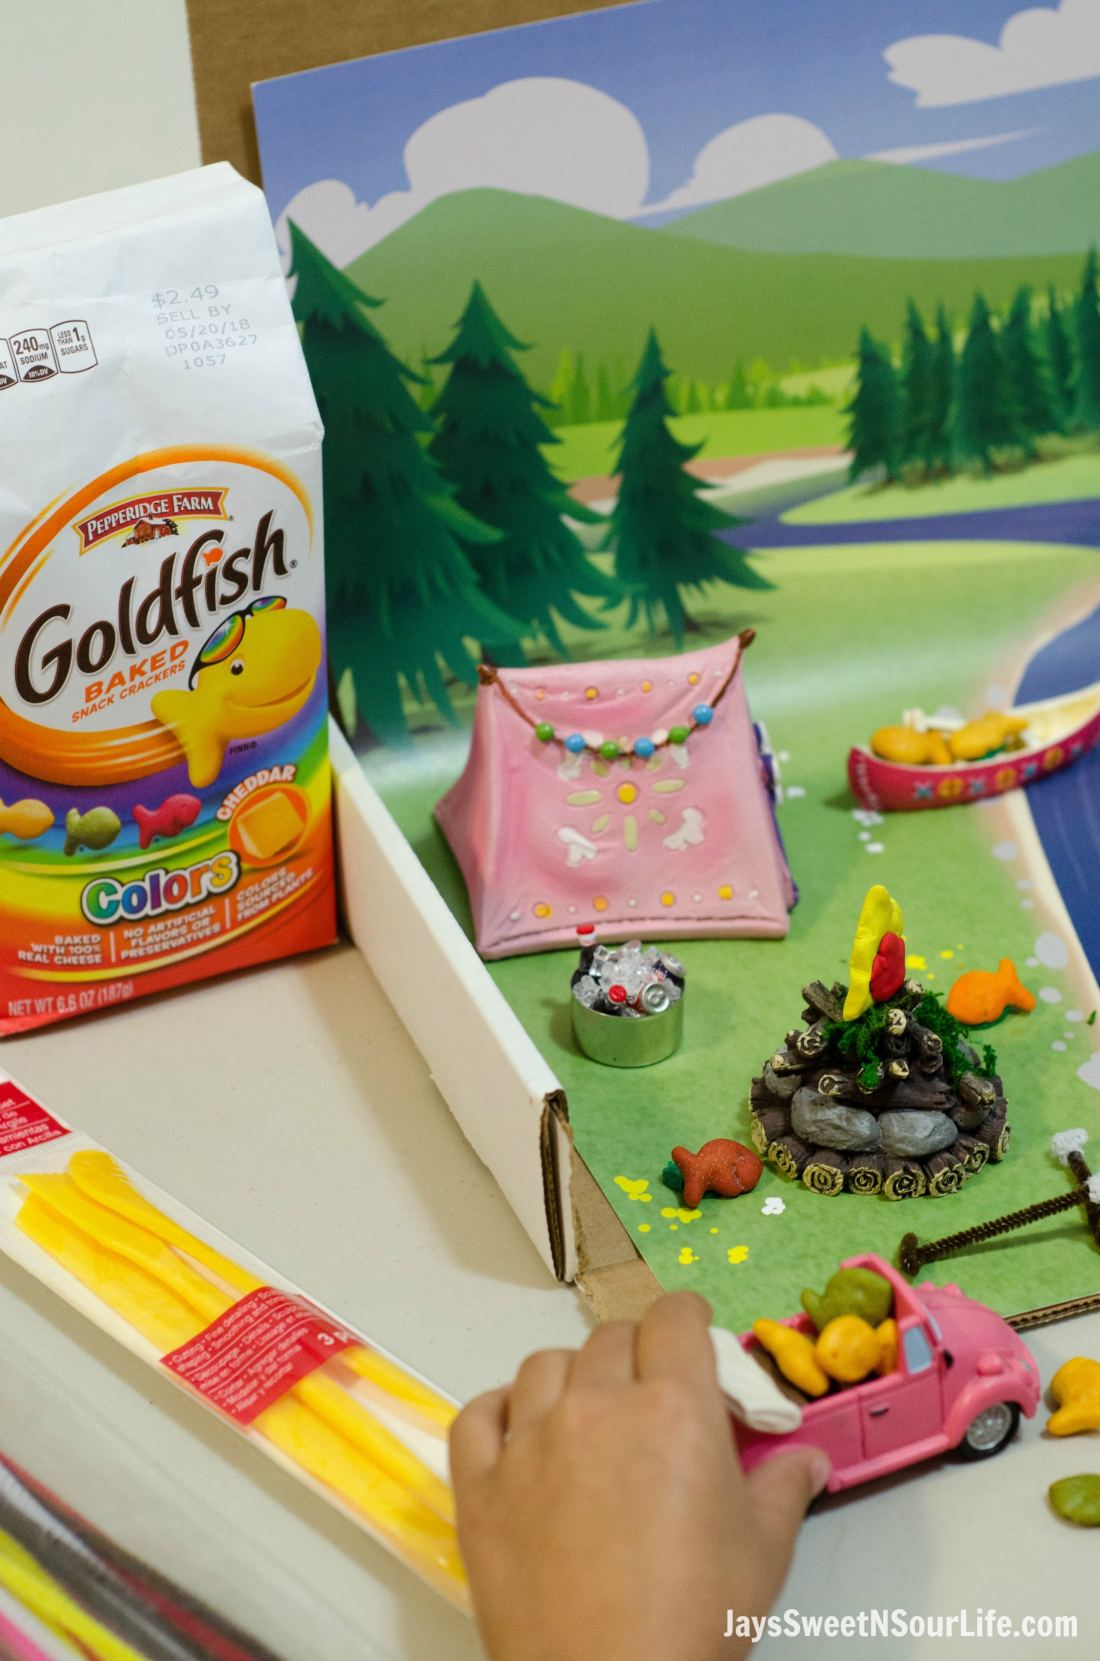 Creating Goldfish Tales with your kids are a fun way to spend your afternoons together. Create a stop motion video and share your families story. Let the kids set the stage and create a story to remember.